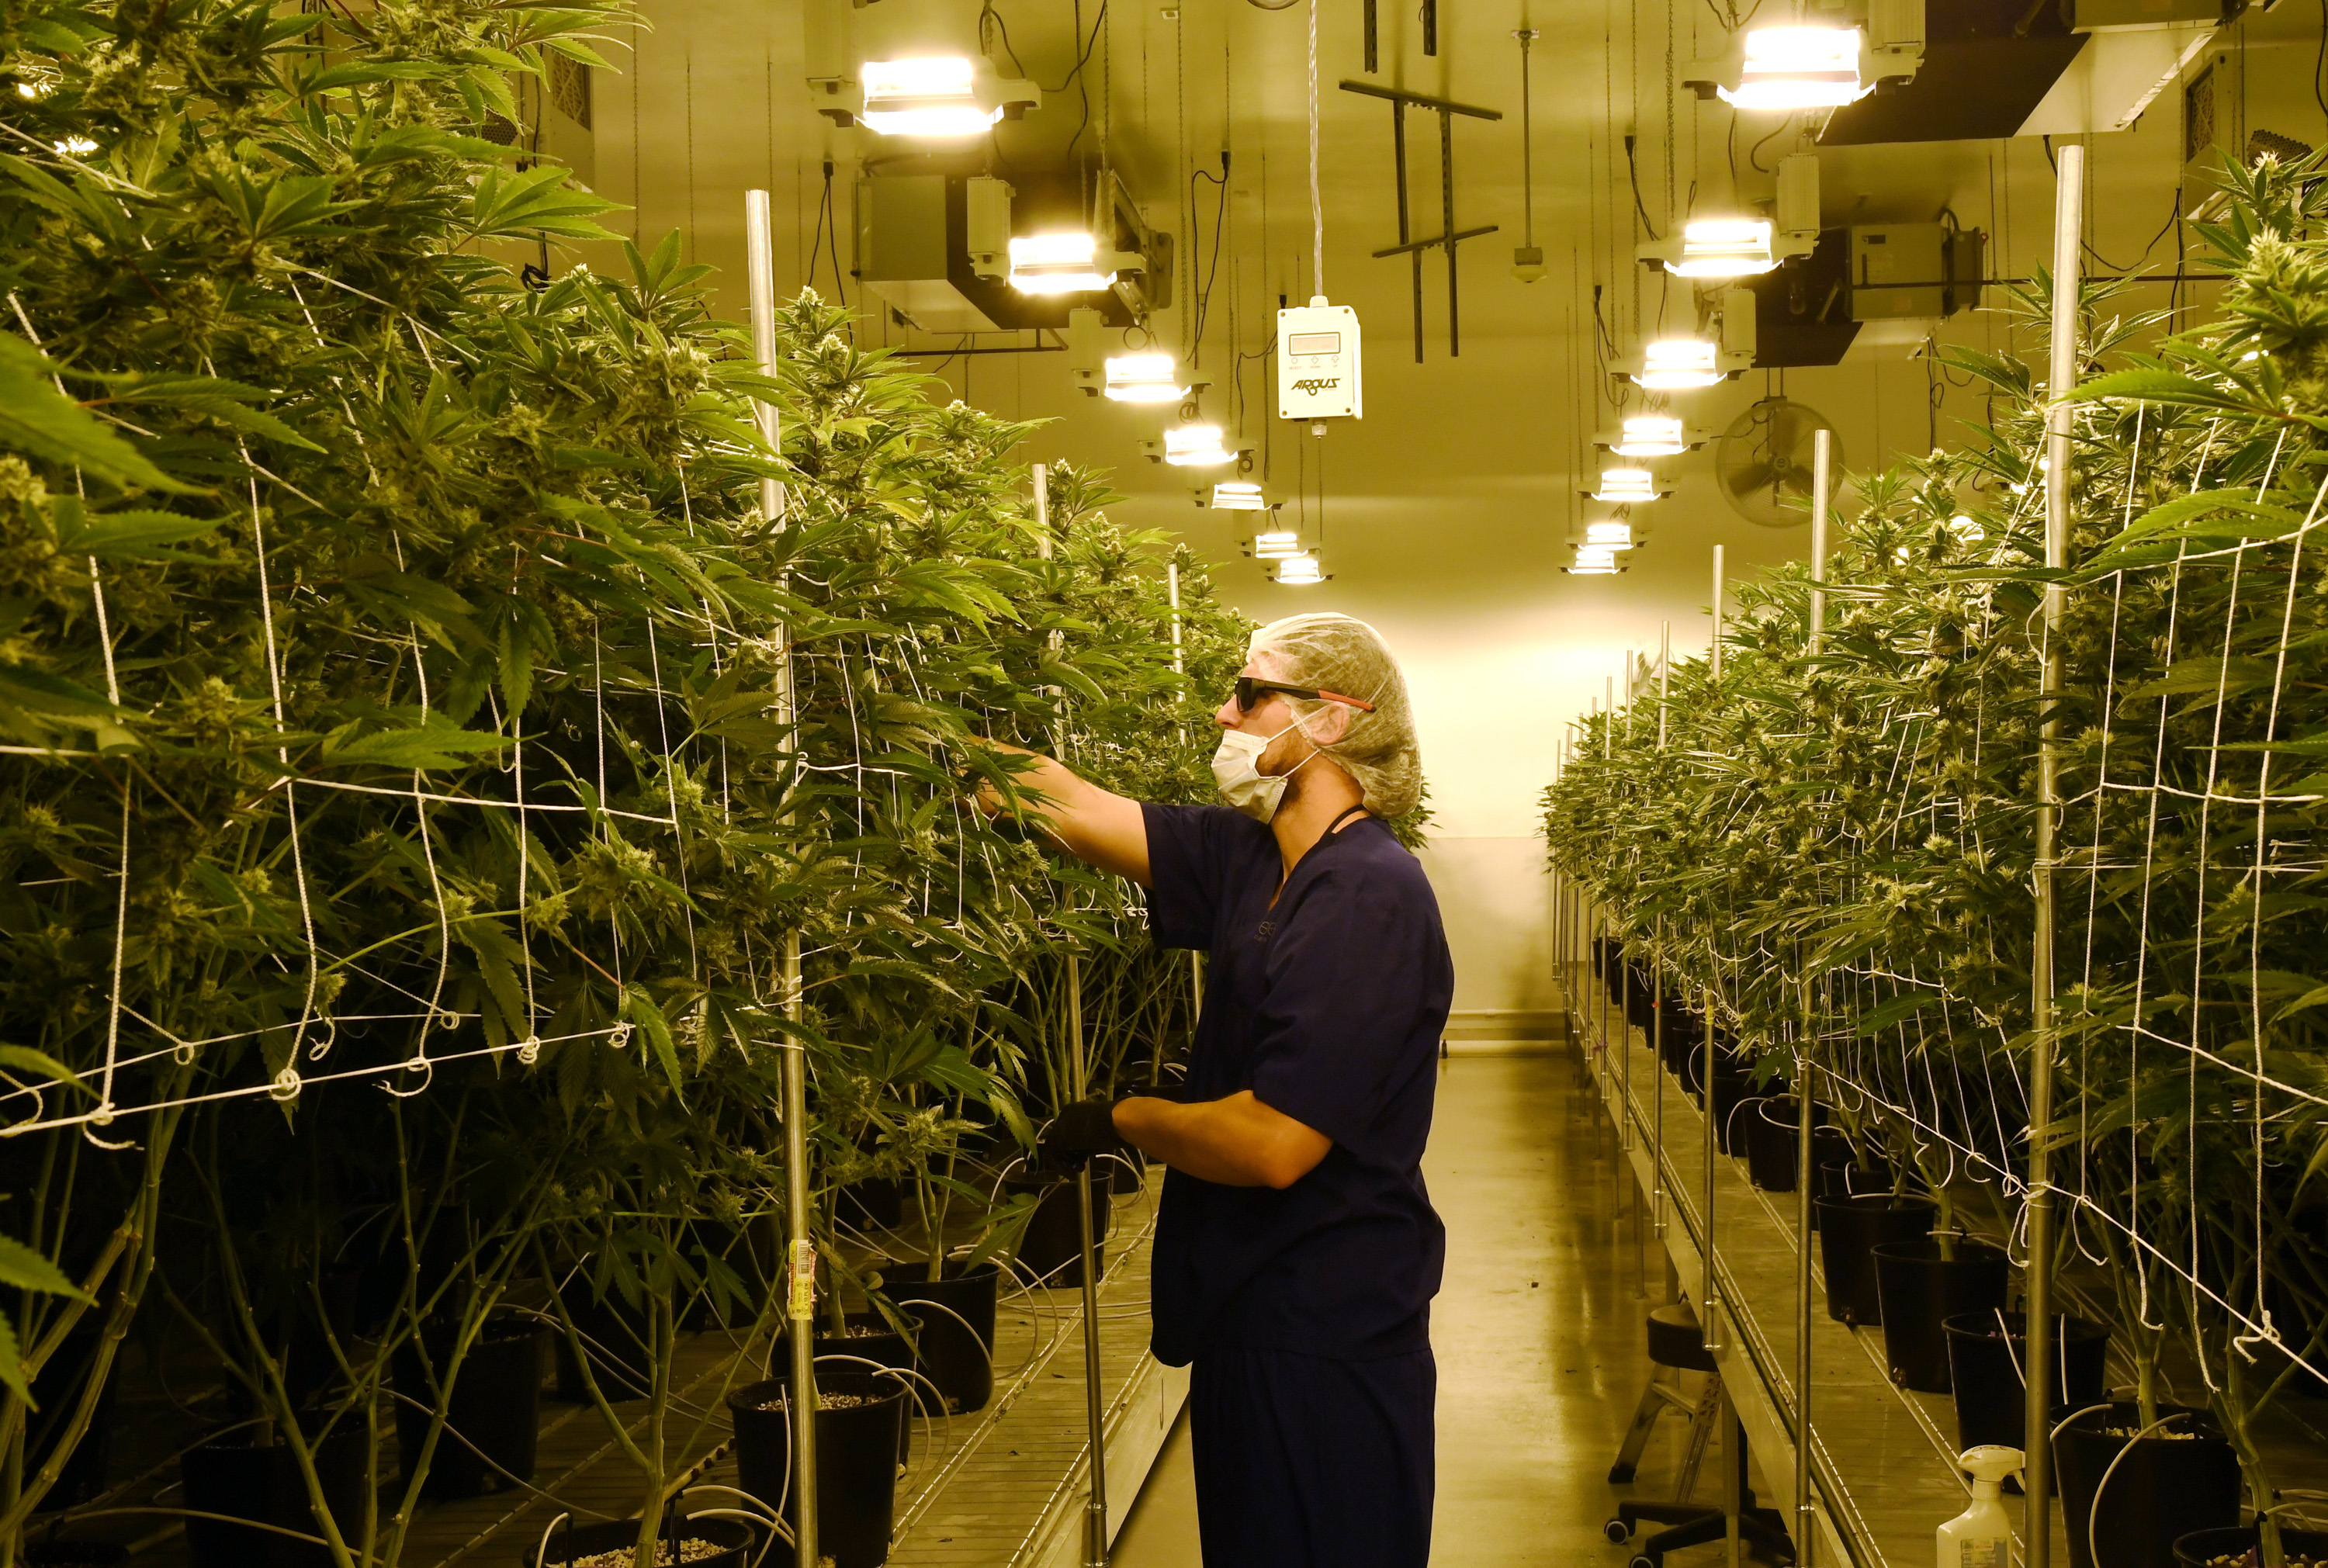 David Burr demonstrates removing leaves on marijuana plants to allow more light for growth at Essence Vegas' 54,000-square-foot marijuana cultivation facility on July 6, 2017 in Las Vegas, Nevada.